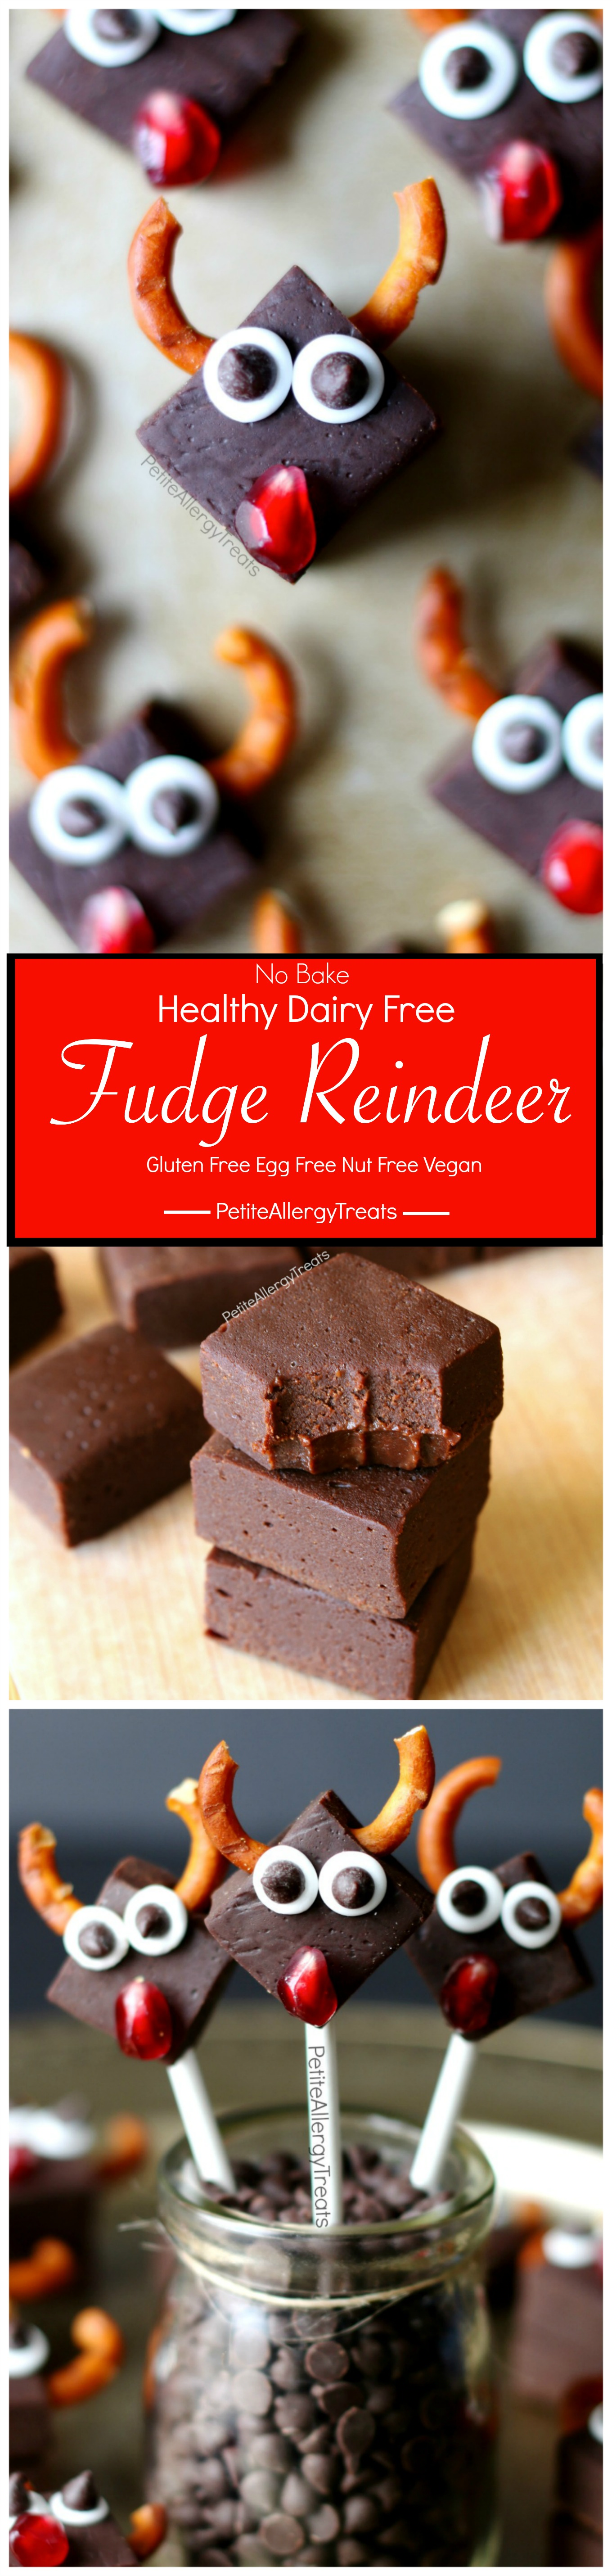 Healthy Dairy Free Fudge Reindeer Recipe (vegan gluten free)- Healthy chocolate fudge (with vegetables) for Christmas! Dye free gluten free and food allergy friendly